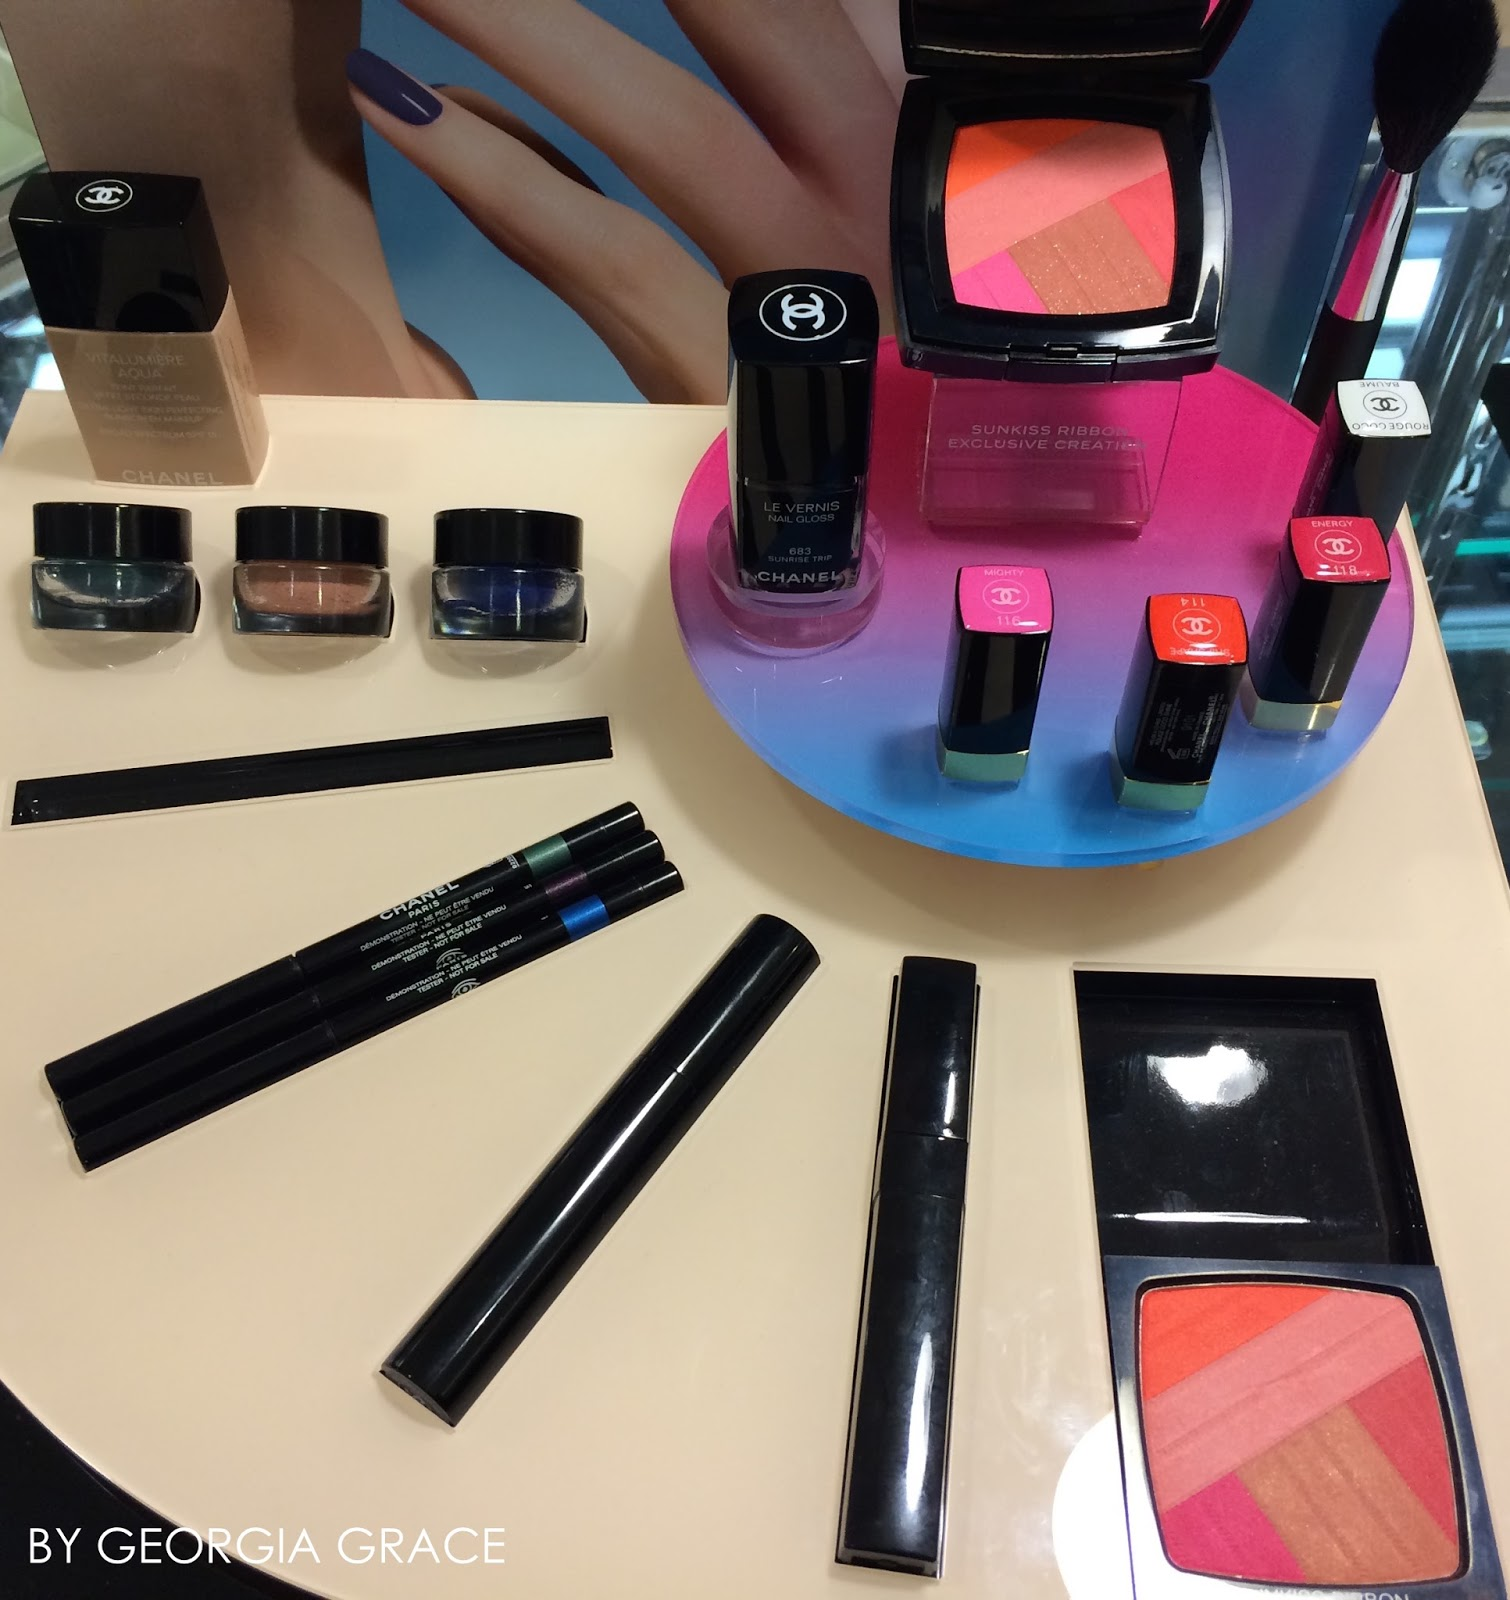 Chanel Spring 2016 Makeup Swatches and Review L.A. Sunrise